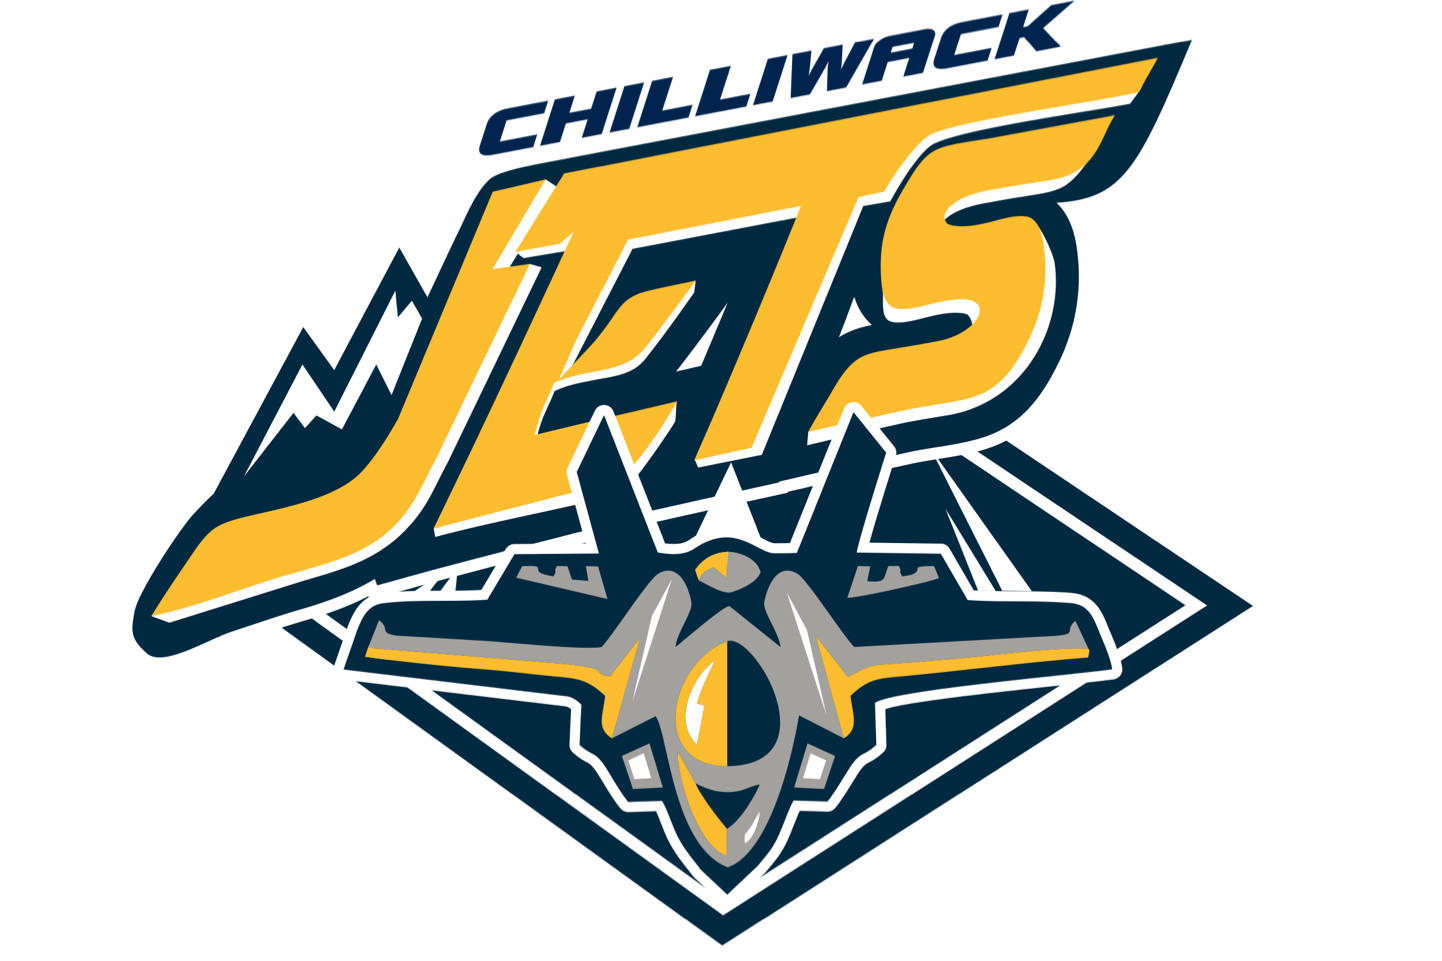 The Chilliwack Jets will play out of the Sardis Sports Complex, for the 2020/2021 season, it was announced on May 15, 2020. (Supplied image)